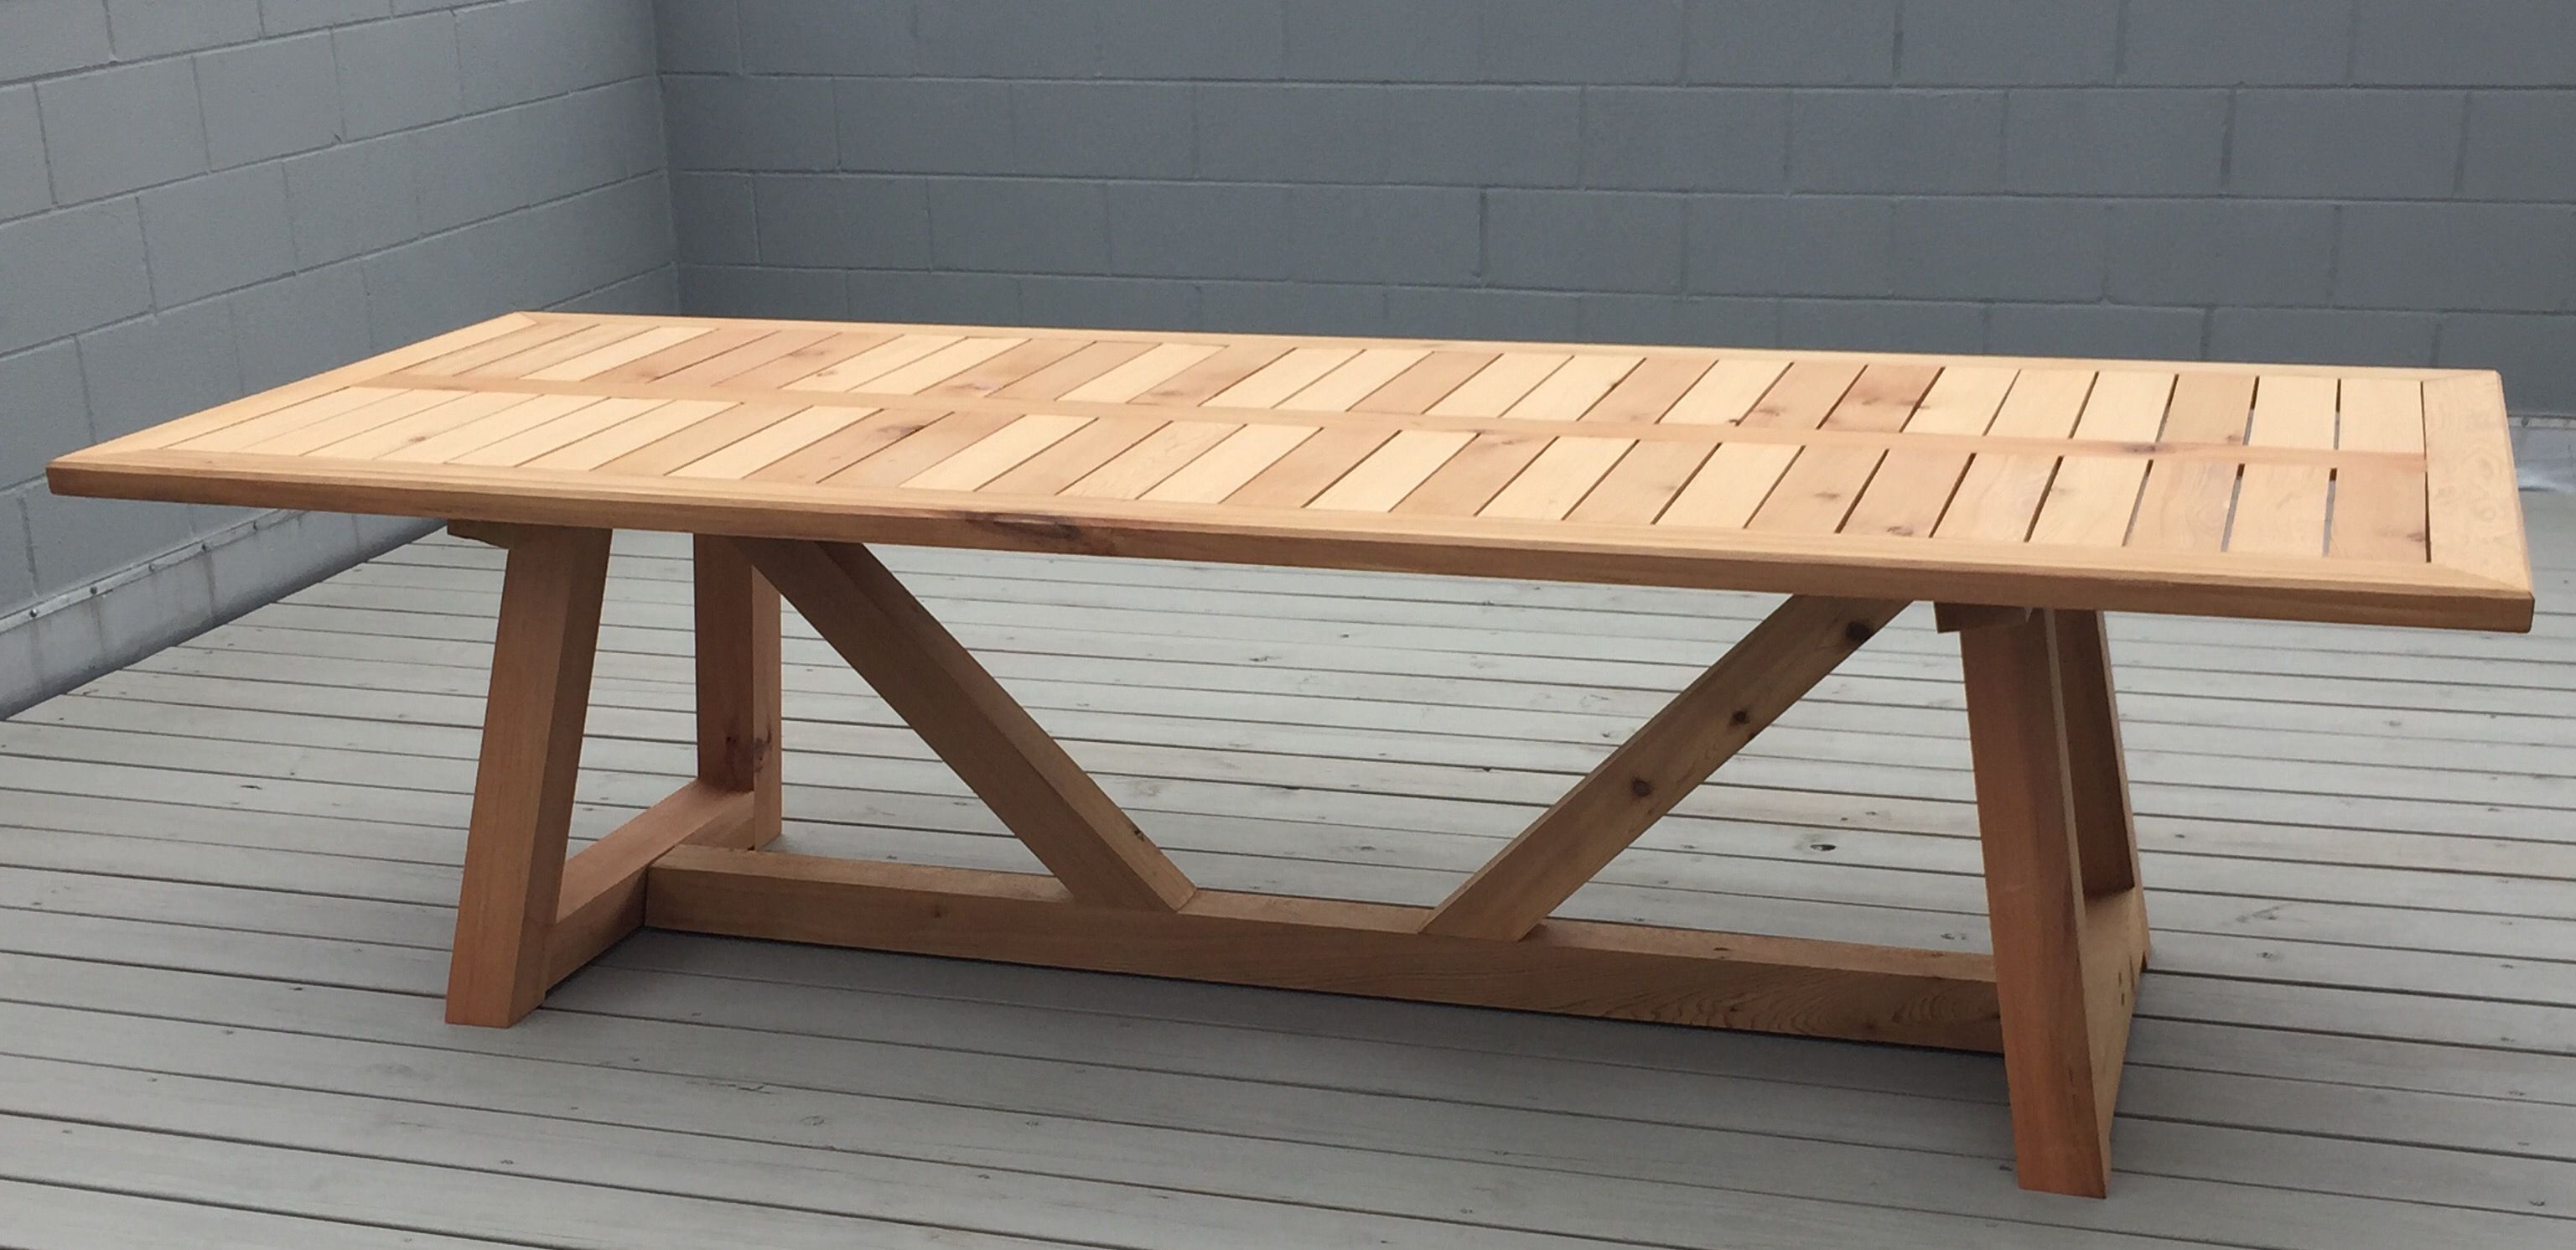 Fantastic Hand Made Western Red Cedar Outdoor Dining Table By Dereva Download Free Architecture Designs Scobabritishbridgeorg